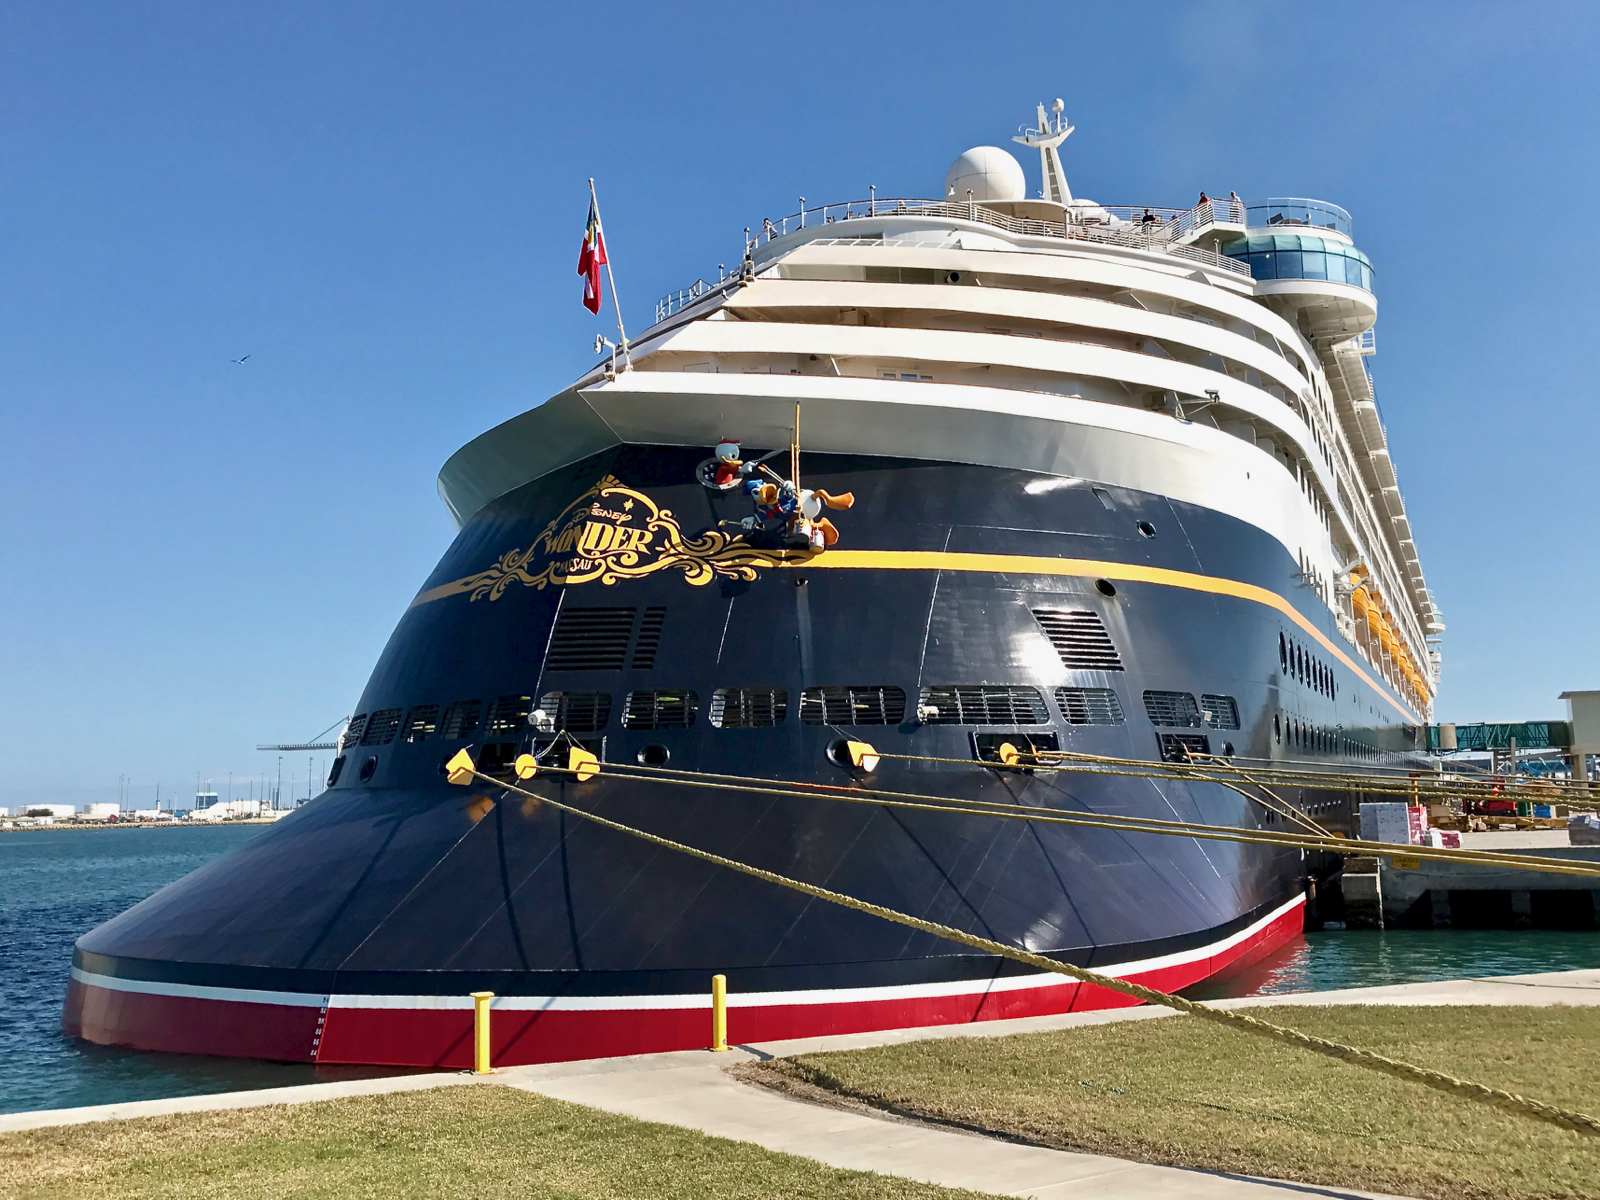 Mouseplanet Visiting The Enhanced Disney Wonder Cruise Ship By - Is disney building a new cruise ship